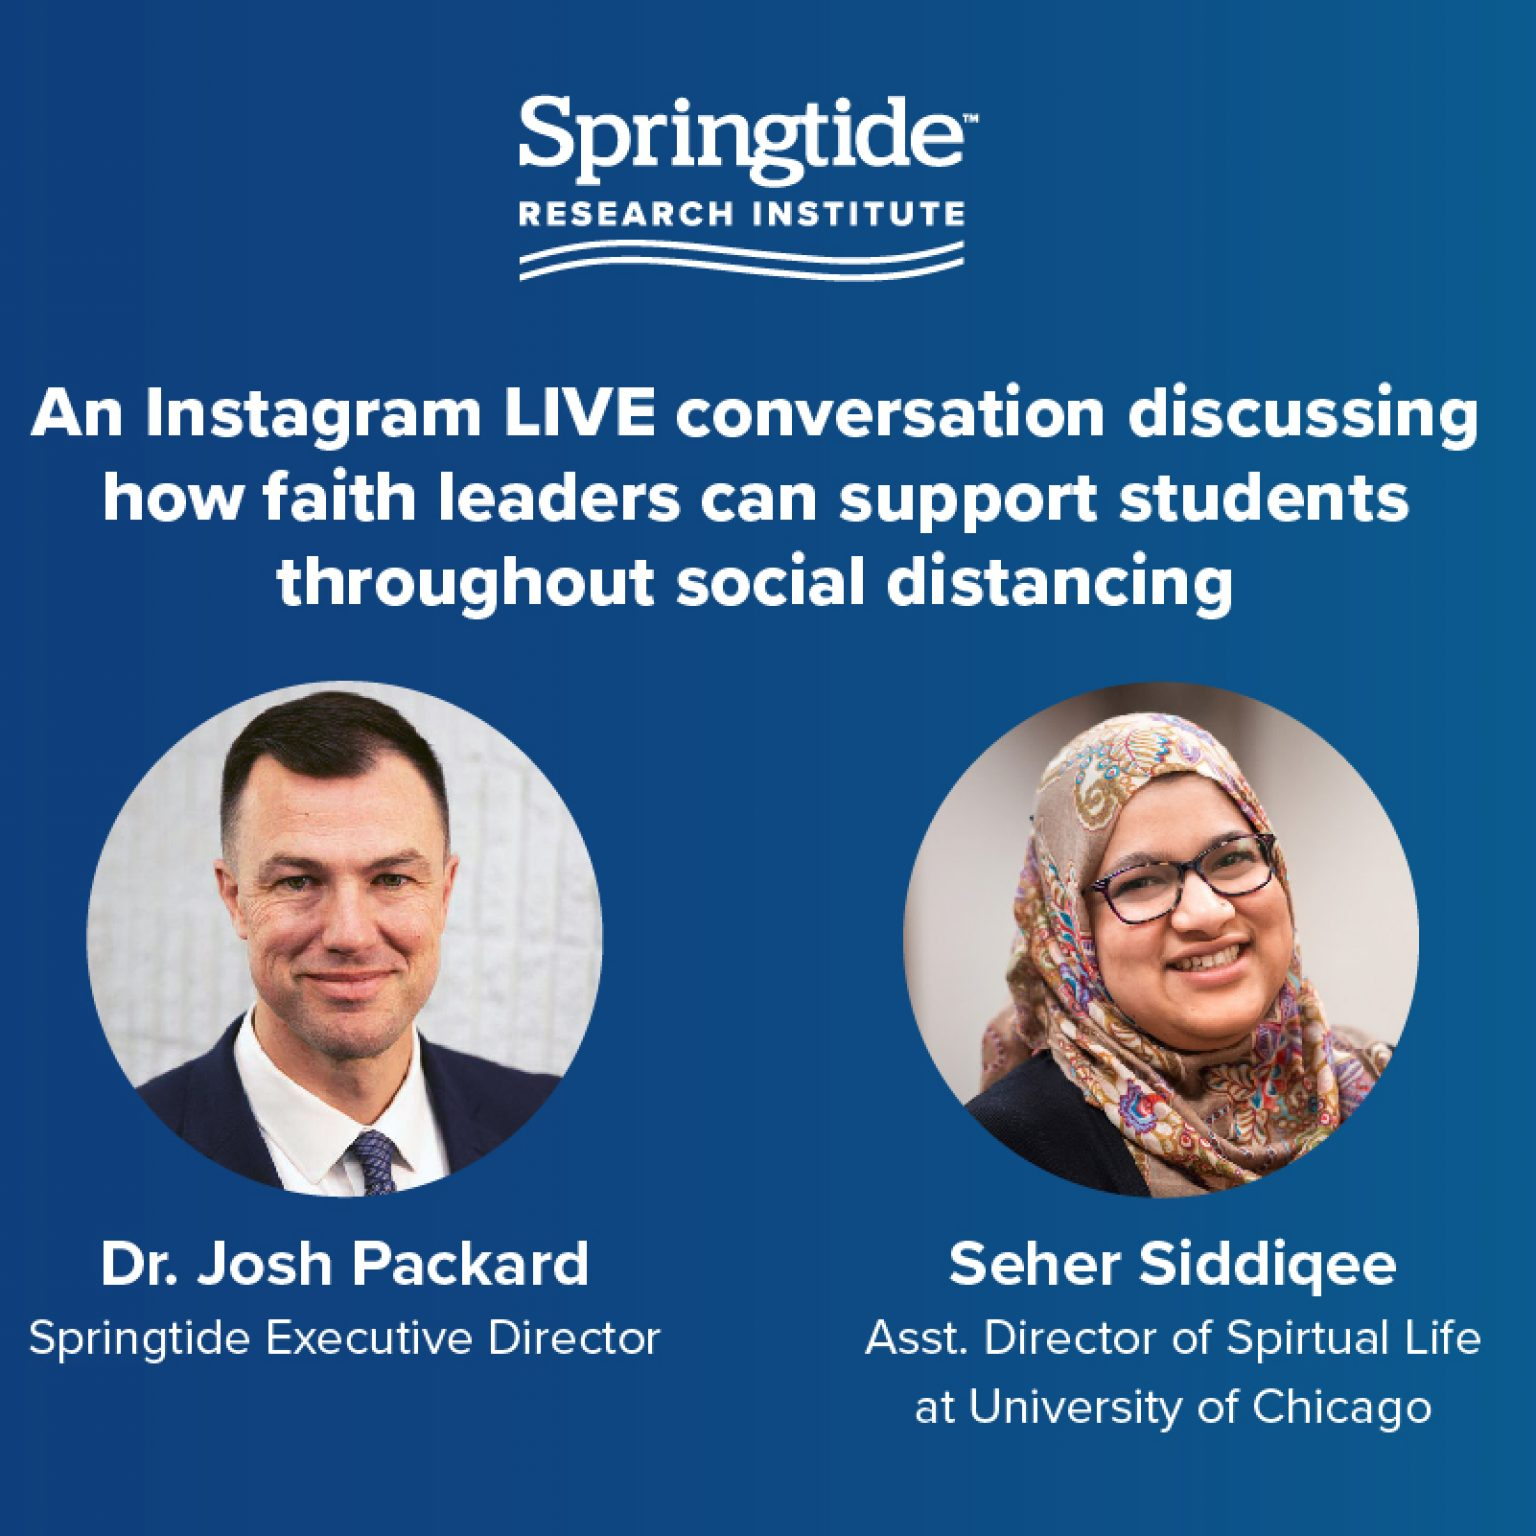 Instagram Live Conversation with Dr. Josh Packard and Seher Siddiqee